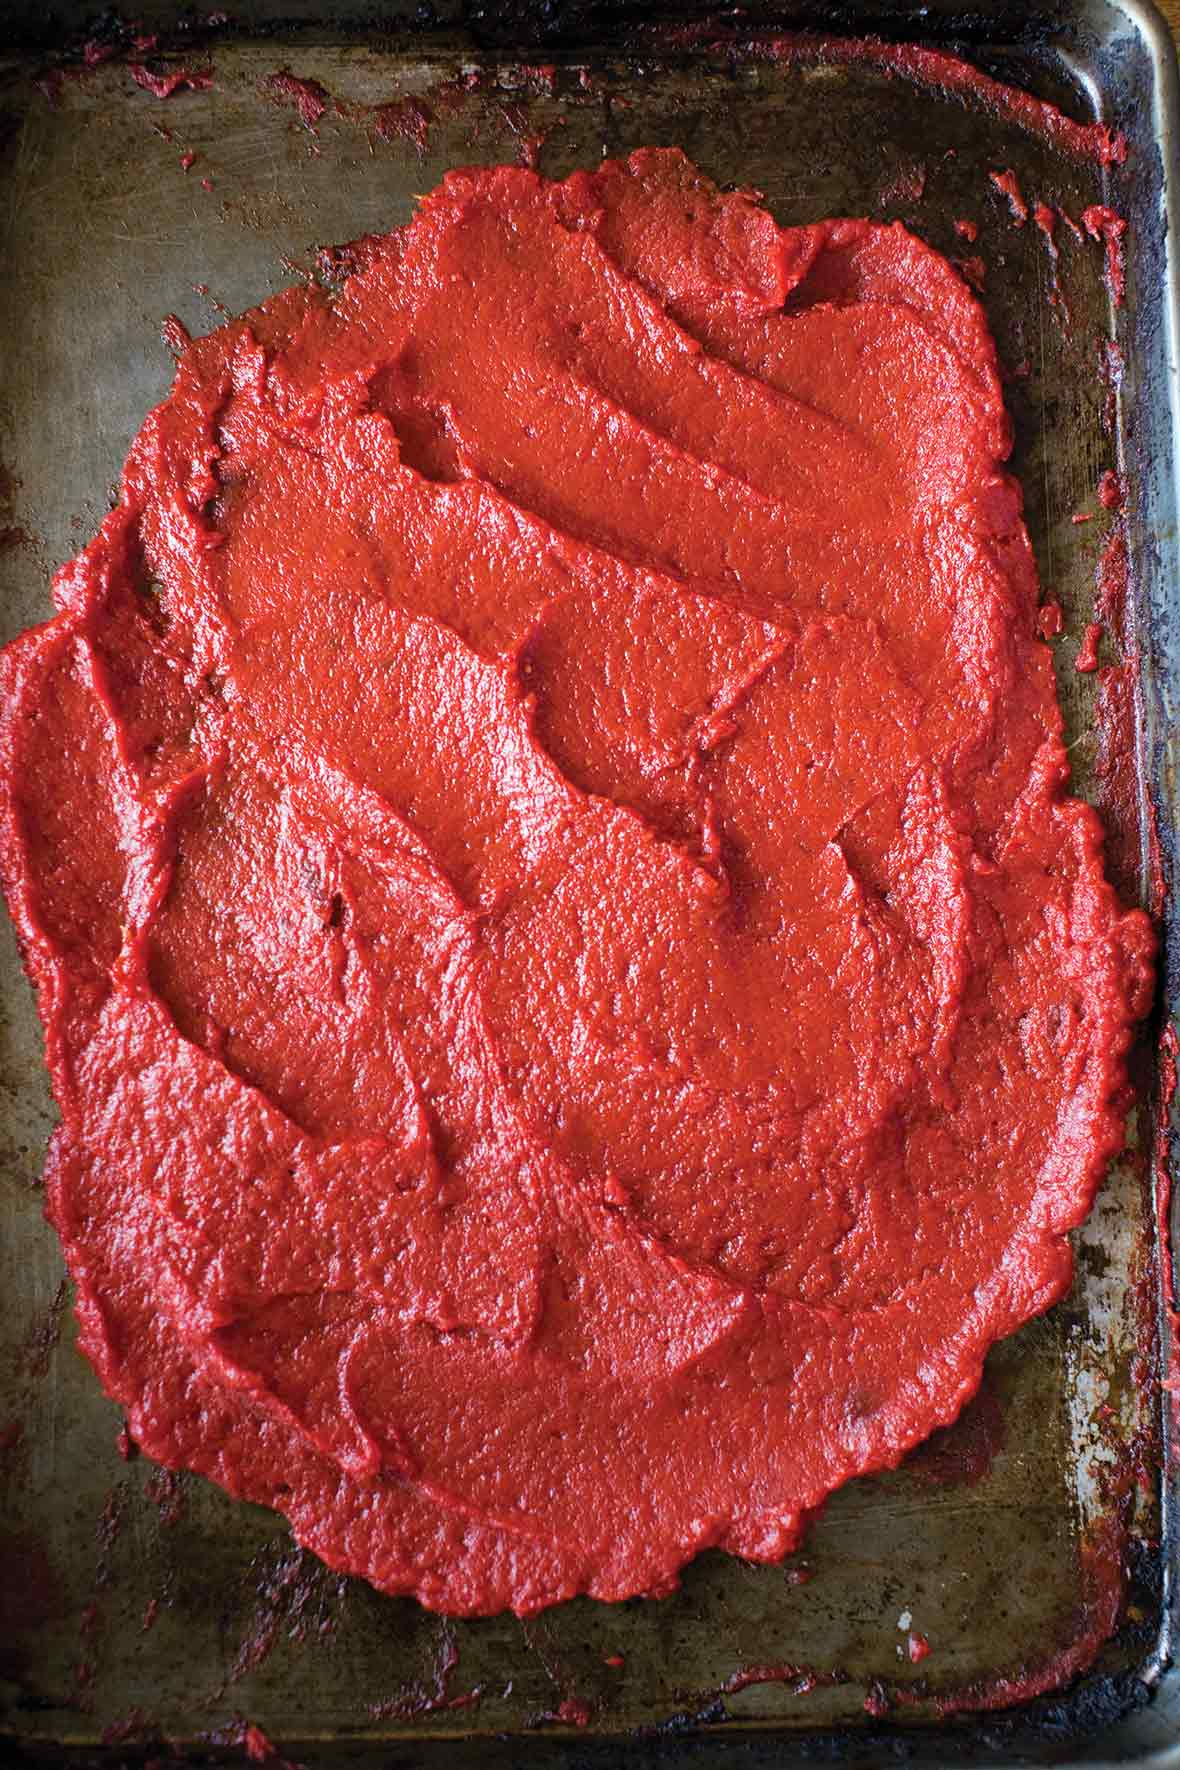 A rimmed baking sheet spread with a thick layer of homemade tomato paste.